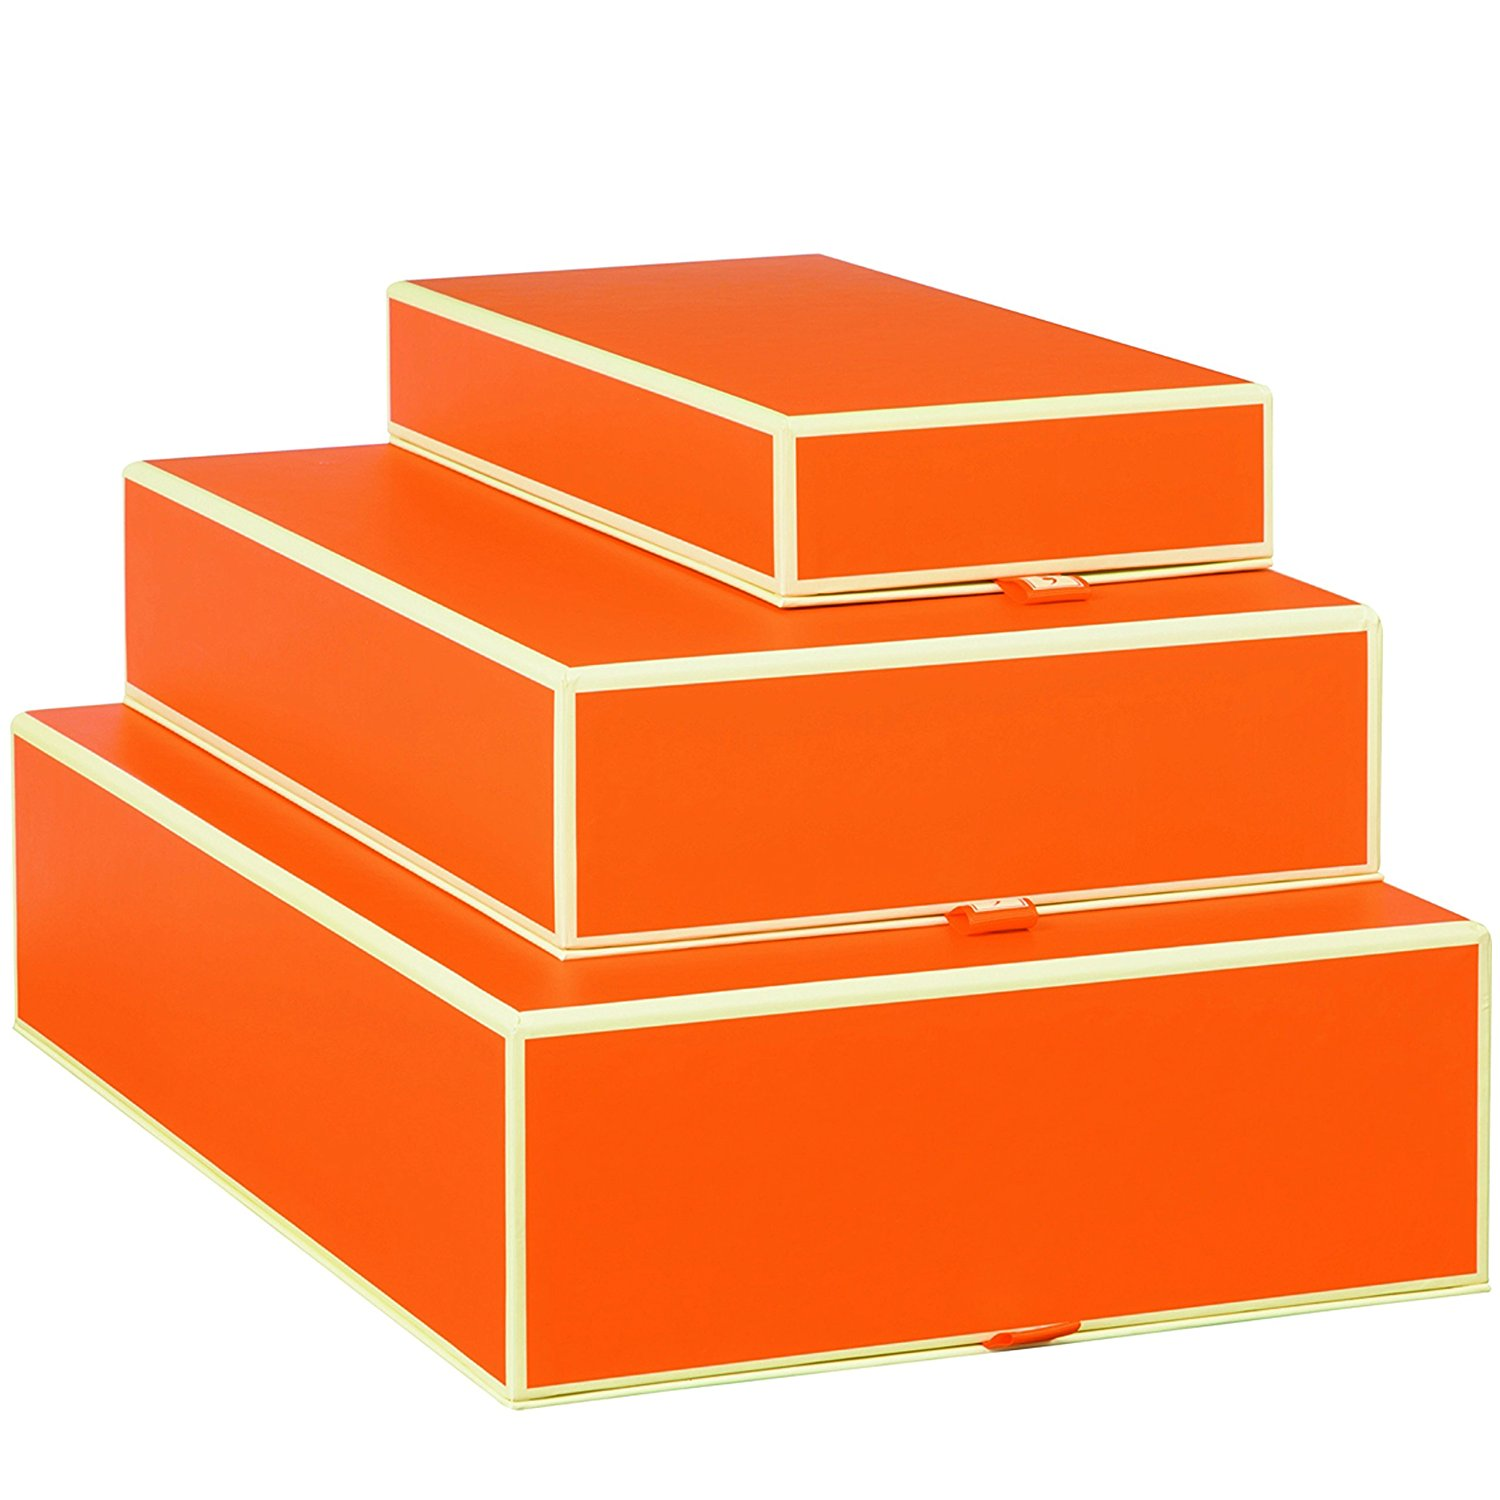 Set of 3 rectangular boxes orange +++ STORAGE- or GIFT BOXES +++ Quality made by Semikolon